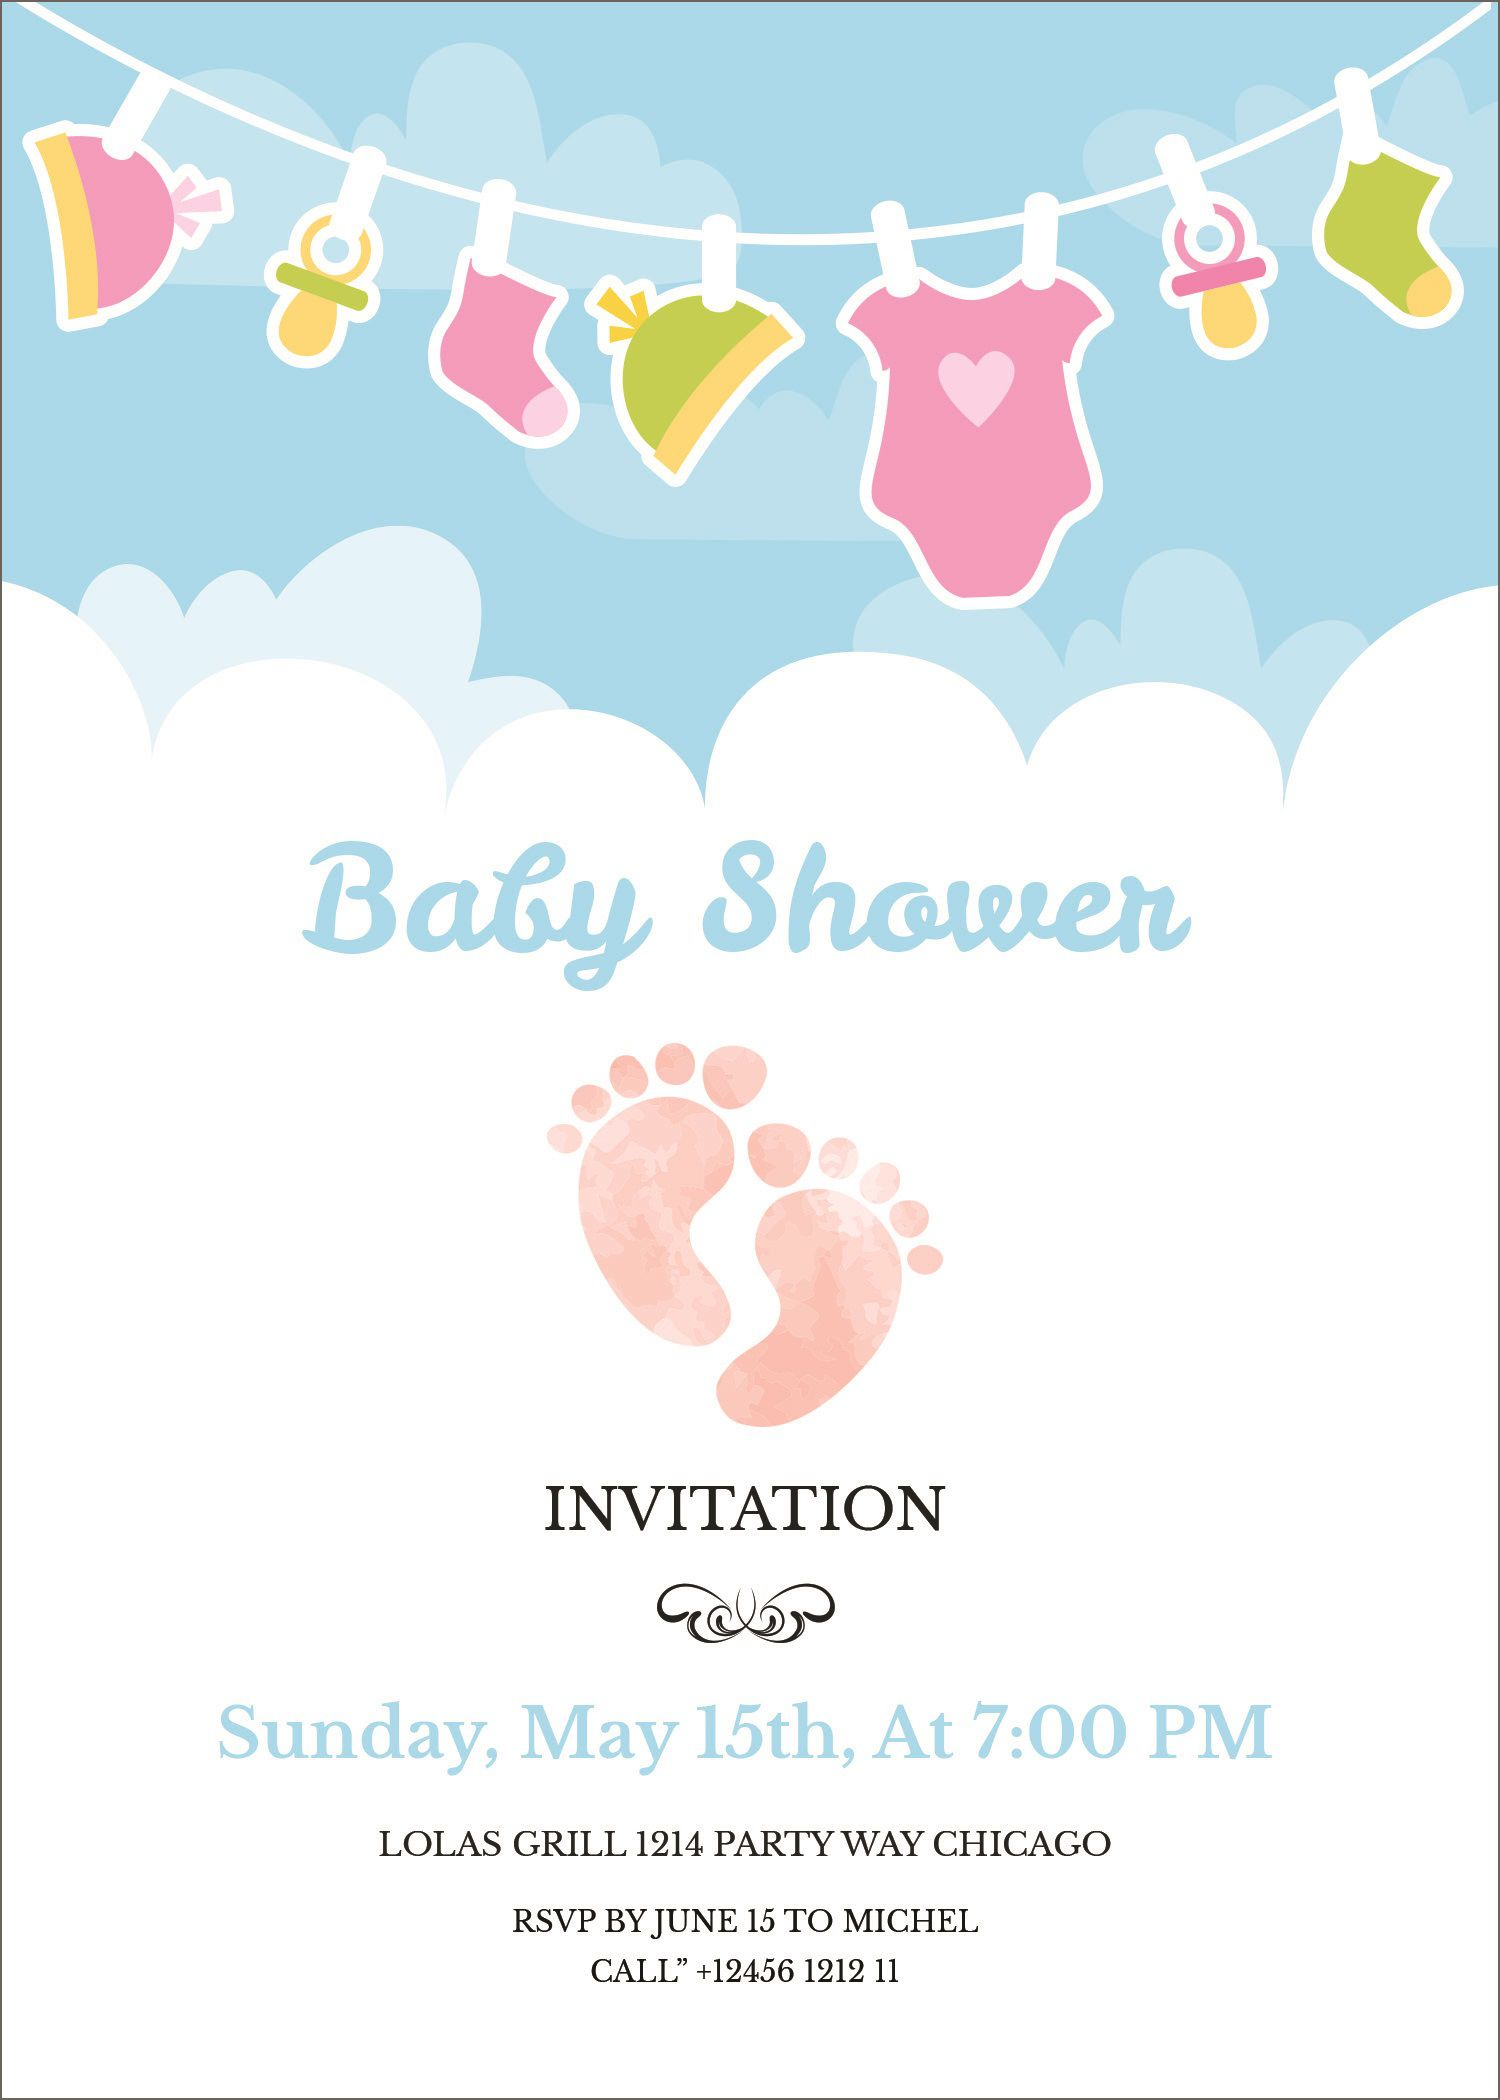 003 Stunning Baby Shower Card Template Psd Highest Clarity Full